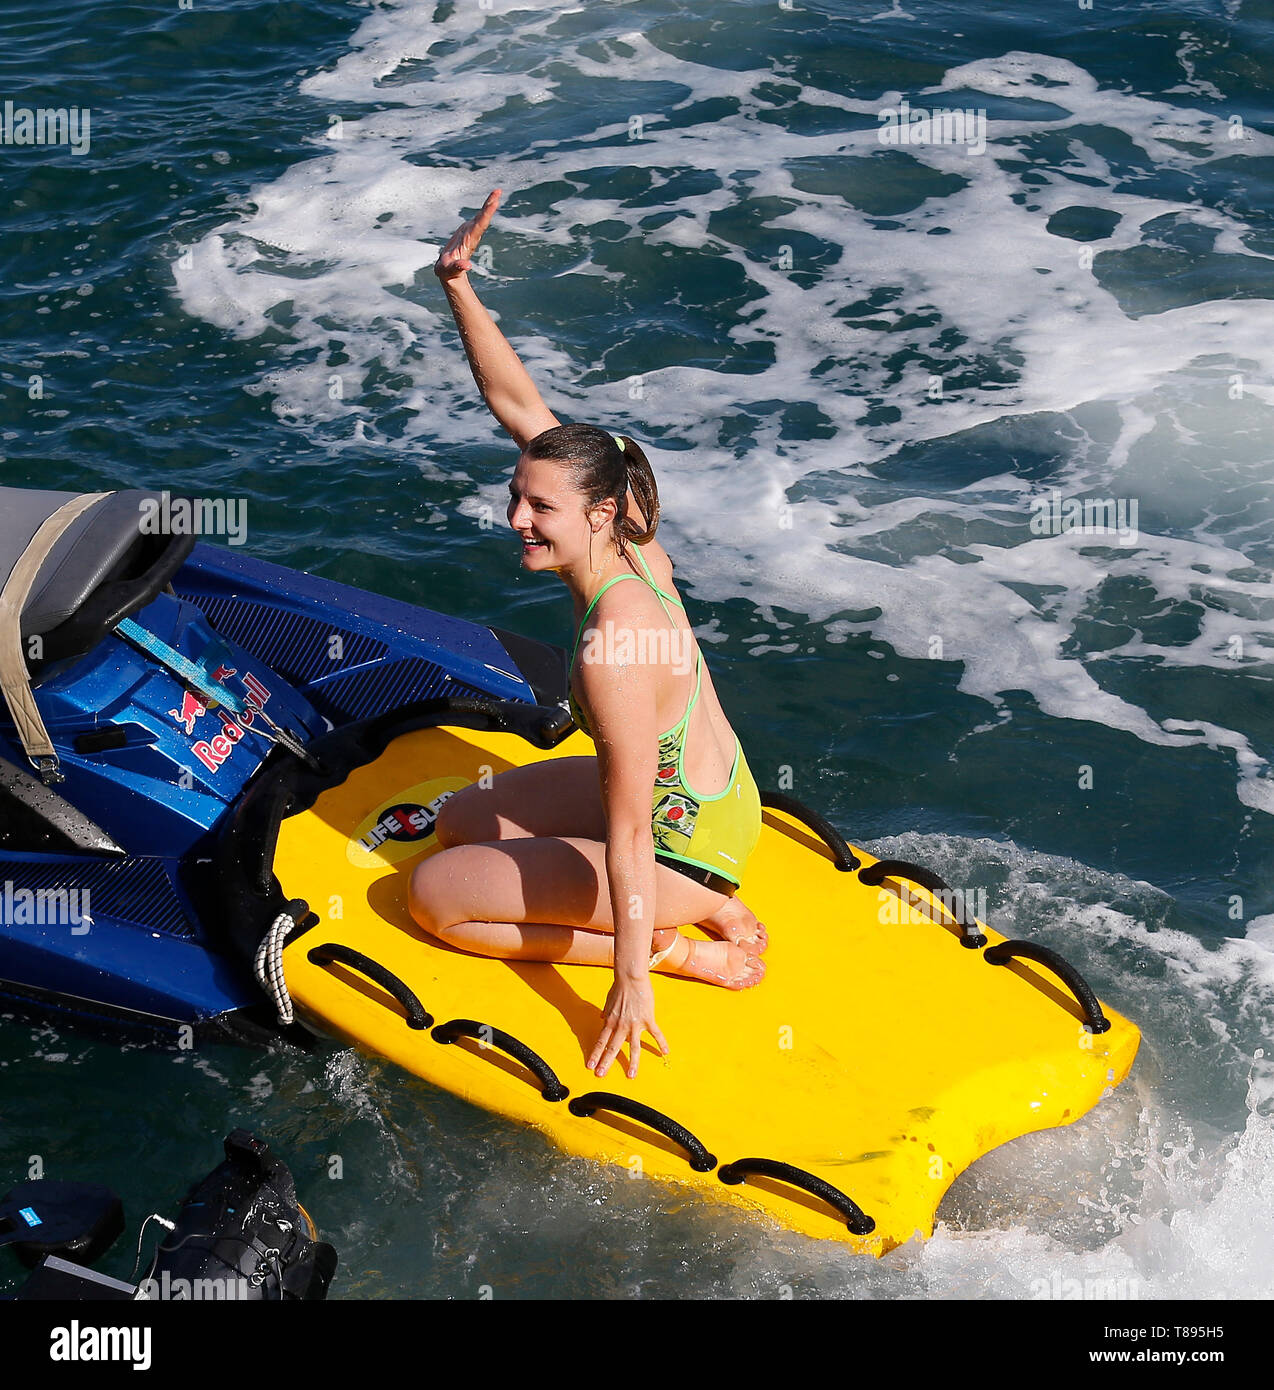 Dun Laoghaire, Dublin, Ireland. 11th May, 2019. Red Bull Cliff Diving World Series, rounds 1 and 2; Iris Schmidbauer (GER) waves to the crowd after completing her dive Credit: Action Plus Sports/Alamy Live News - Stock Image